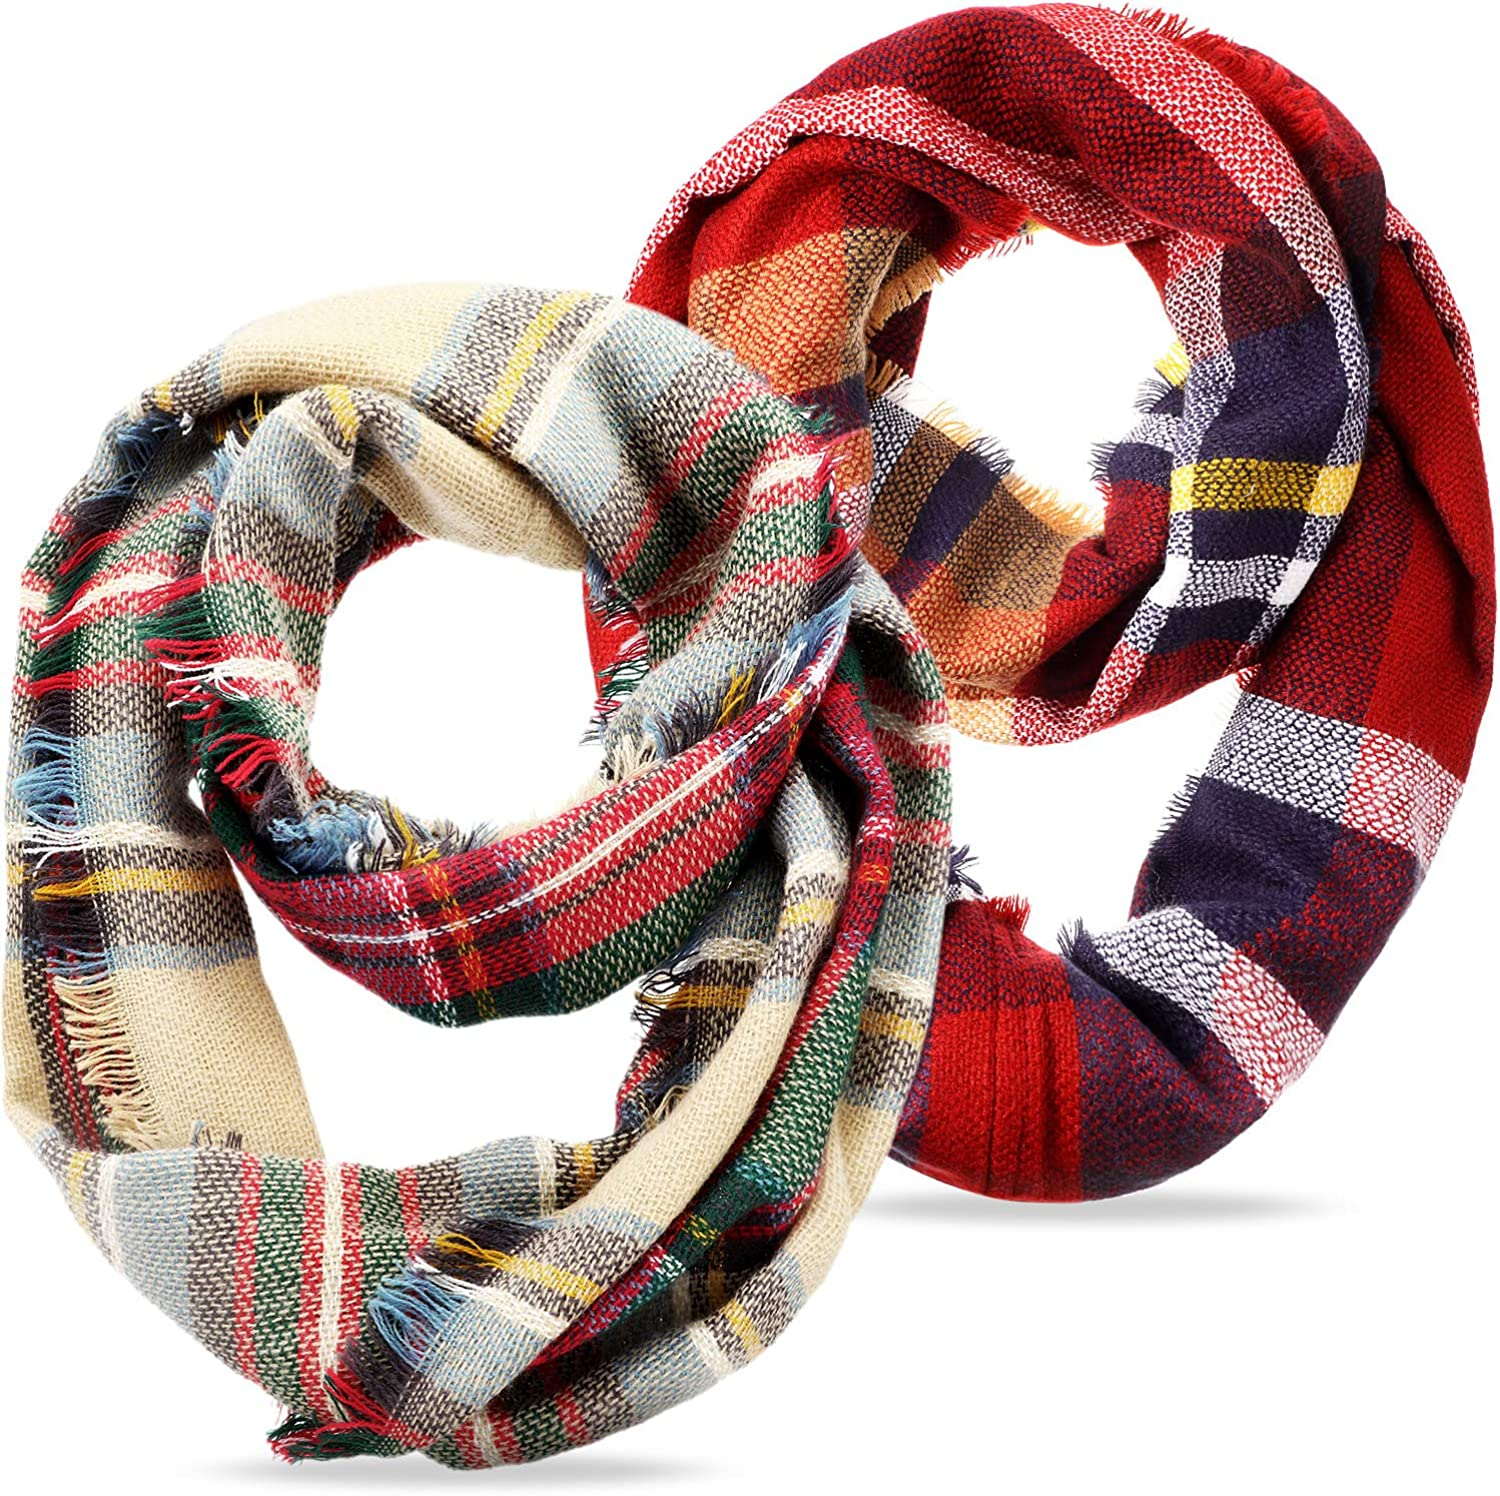 2 Pieces Plaid Tartan Infinity Scarf Winter Checkered Pattern Circle Loop Scarf Wrap for Women Accessories